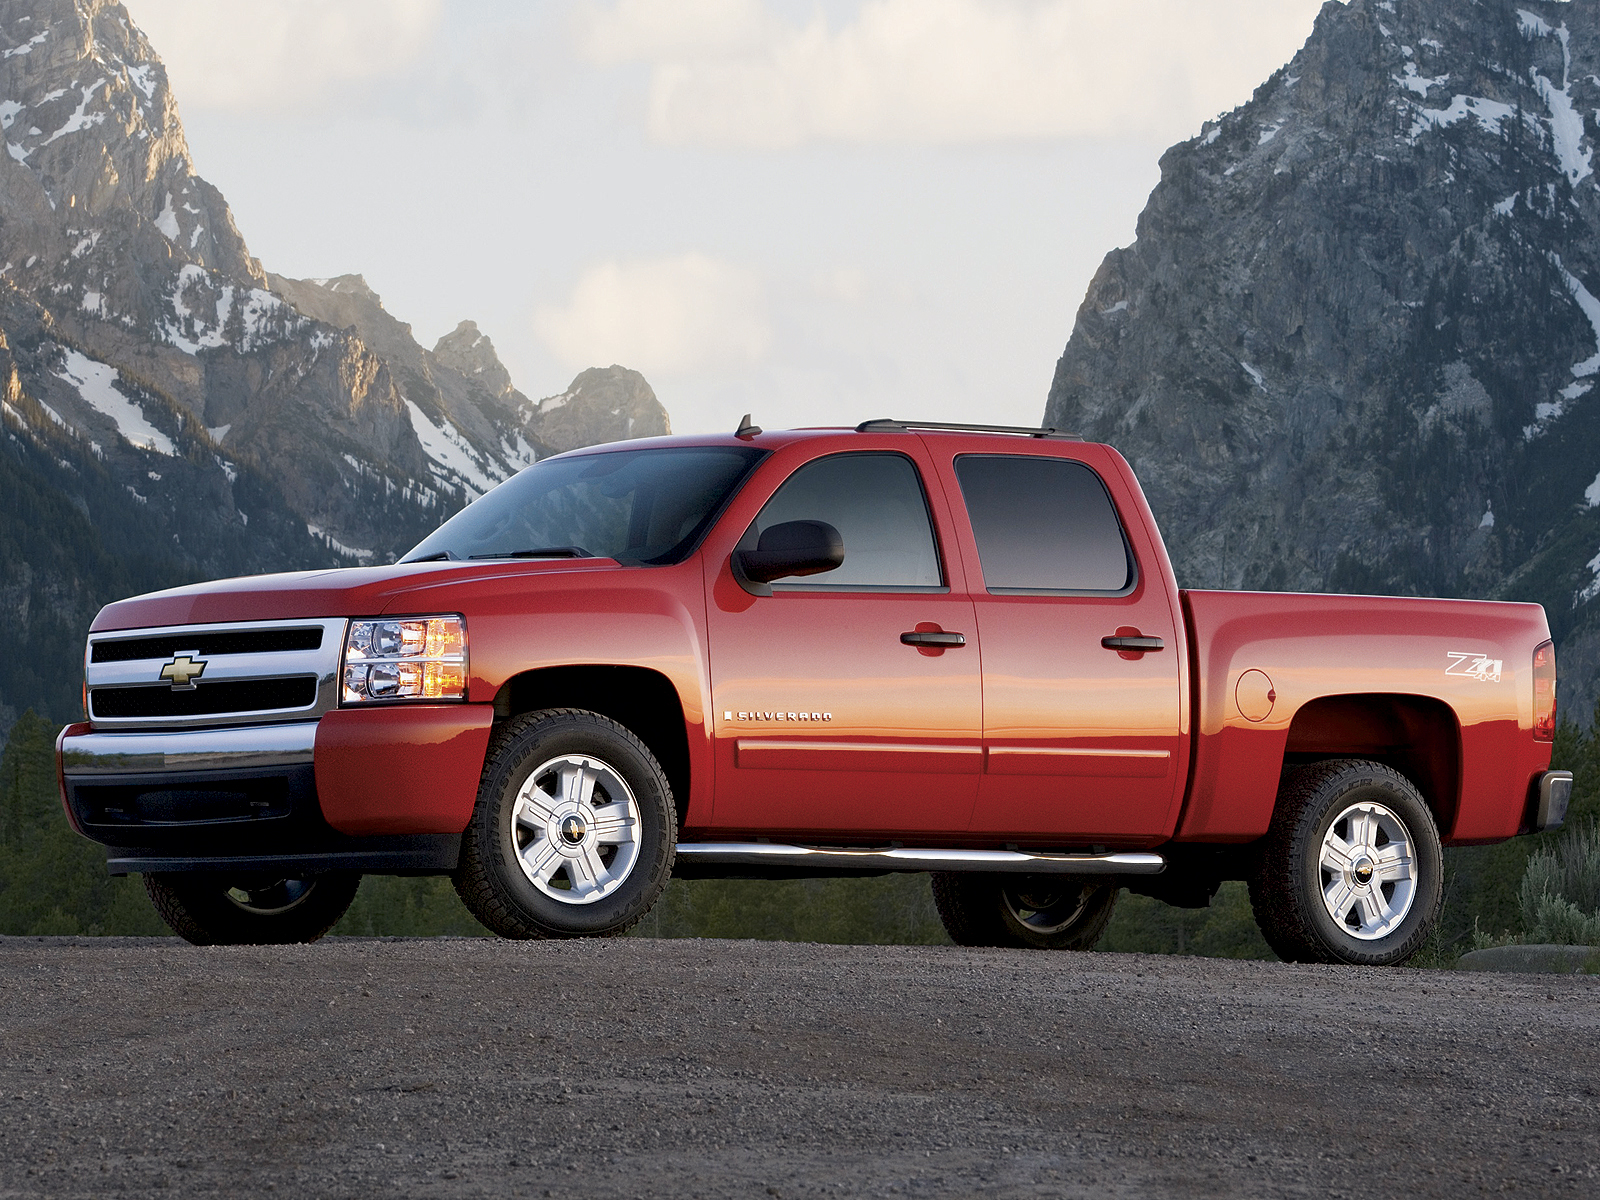 silverado 1500 chevrolet 2008 cab extended truck 2007 cargurus work exterior 4wd